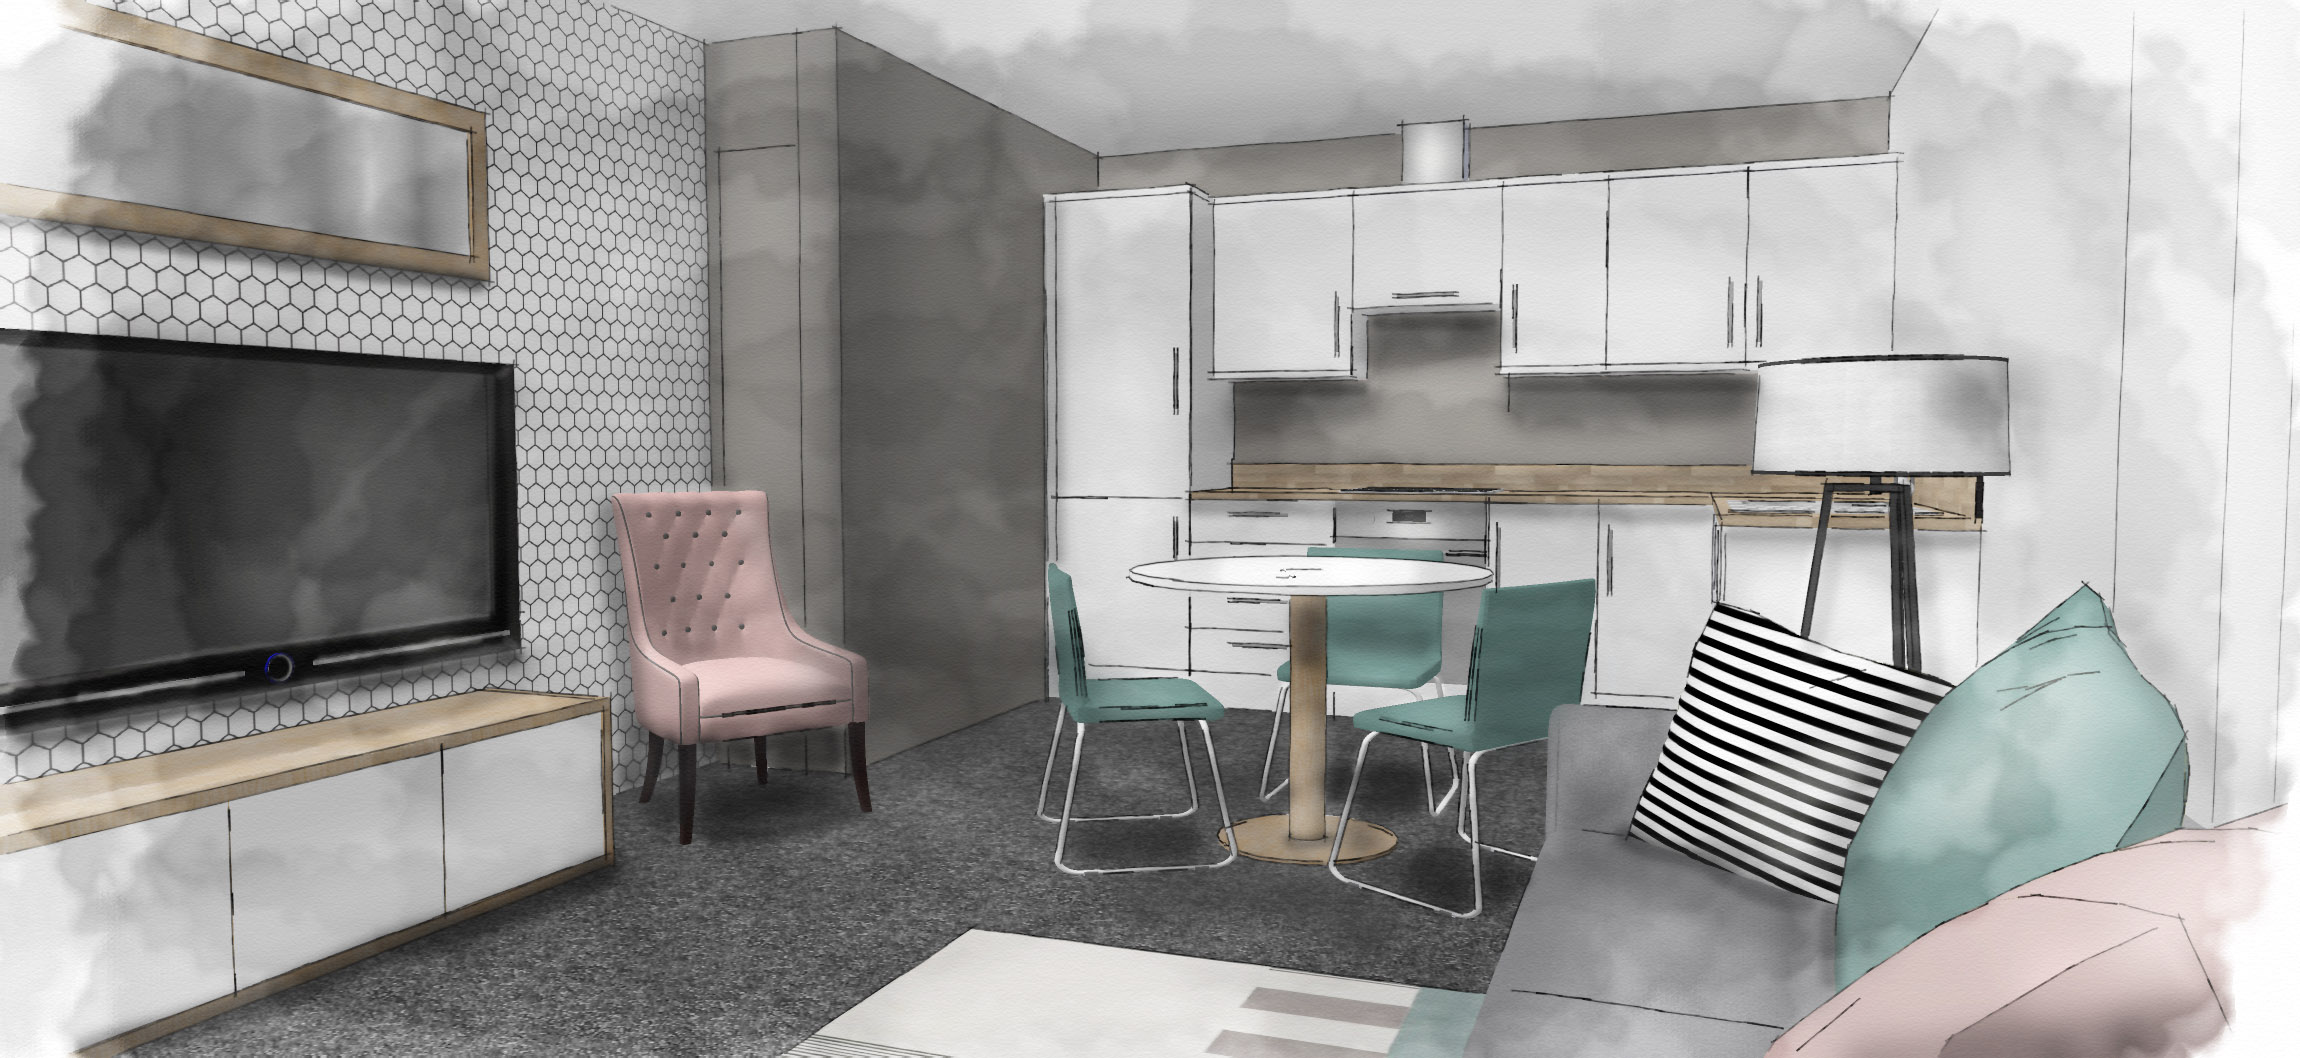 When Did Interior Design Become Amateurish Sketchup Hub